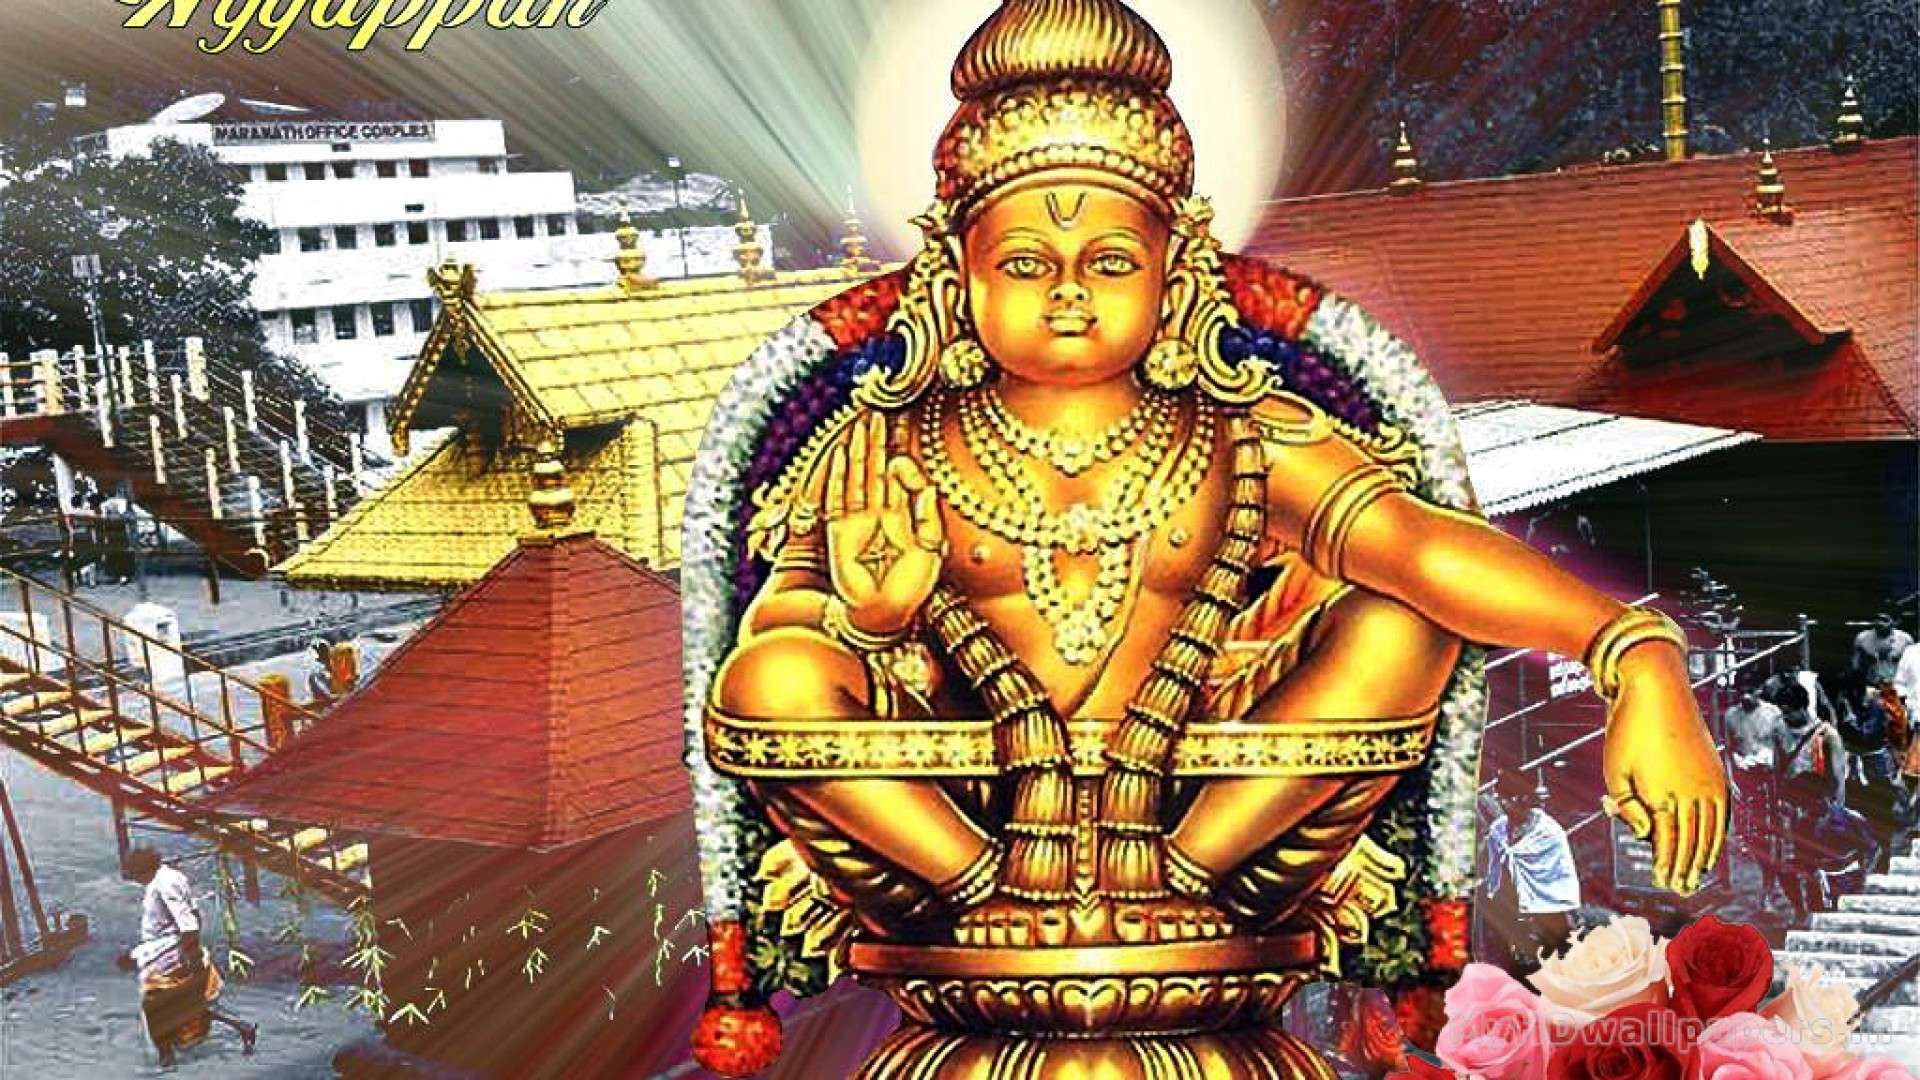 Simple Wallpaper High Resolution Ayyappa - 26279  Collection_82317.in/download/26279